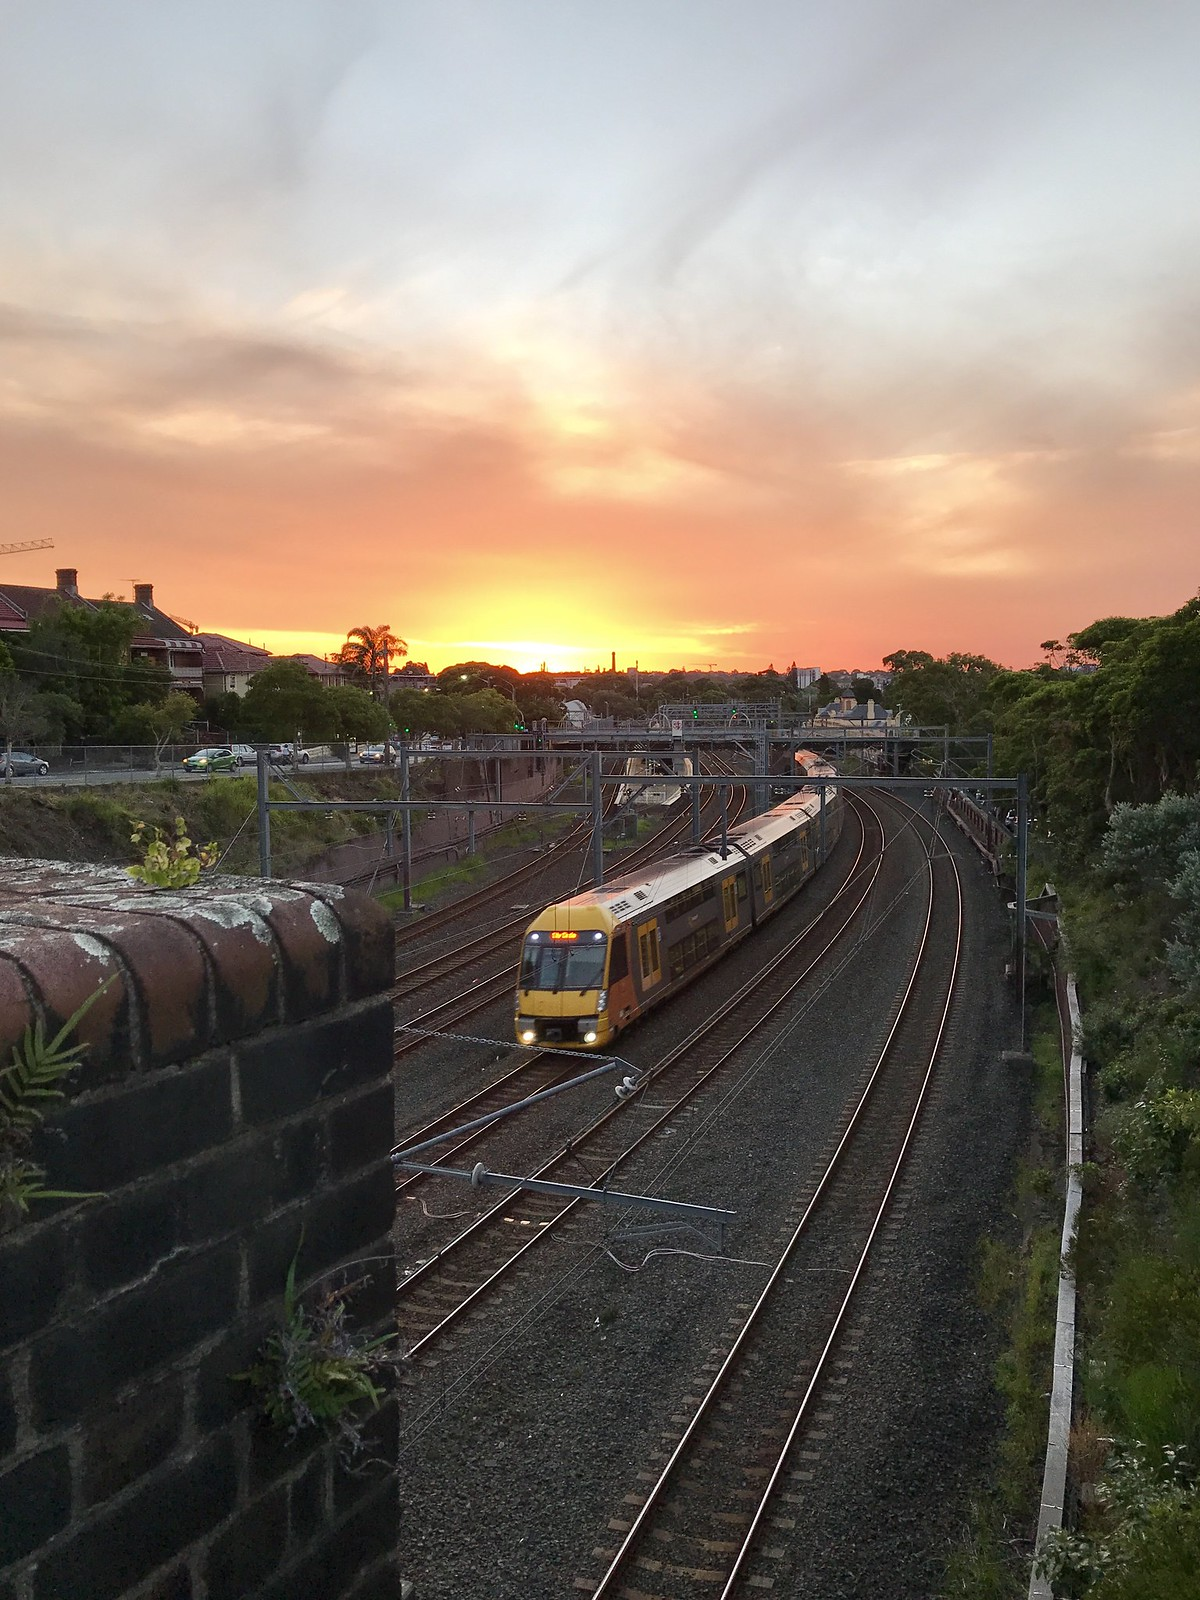 Petersham Station under a burning sunset, from the Chapel St bridge by Tim J.